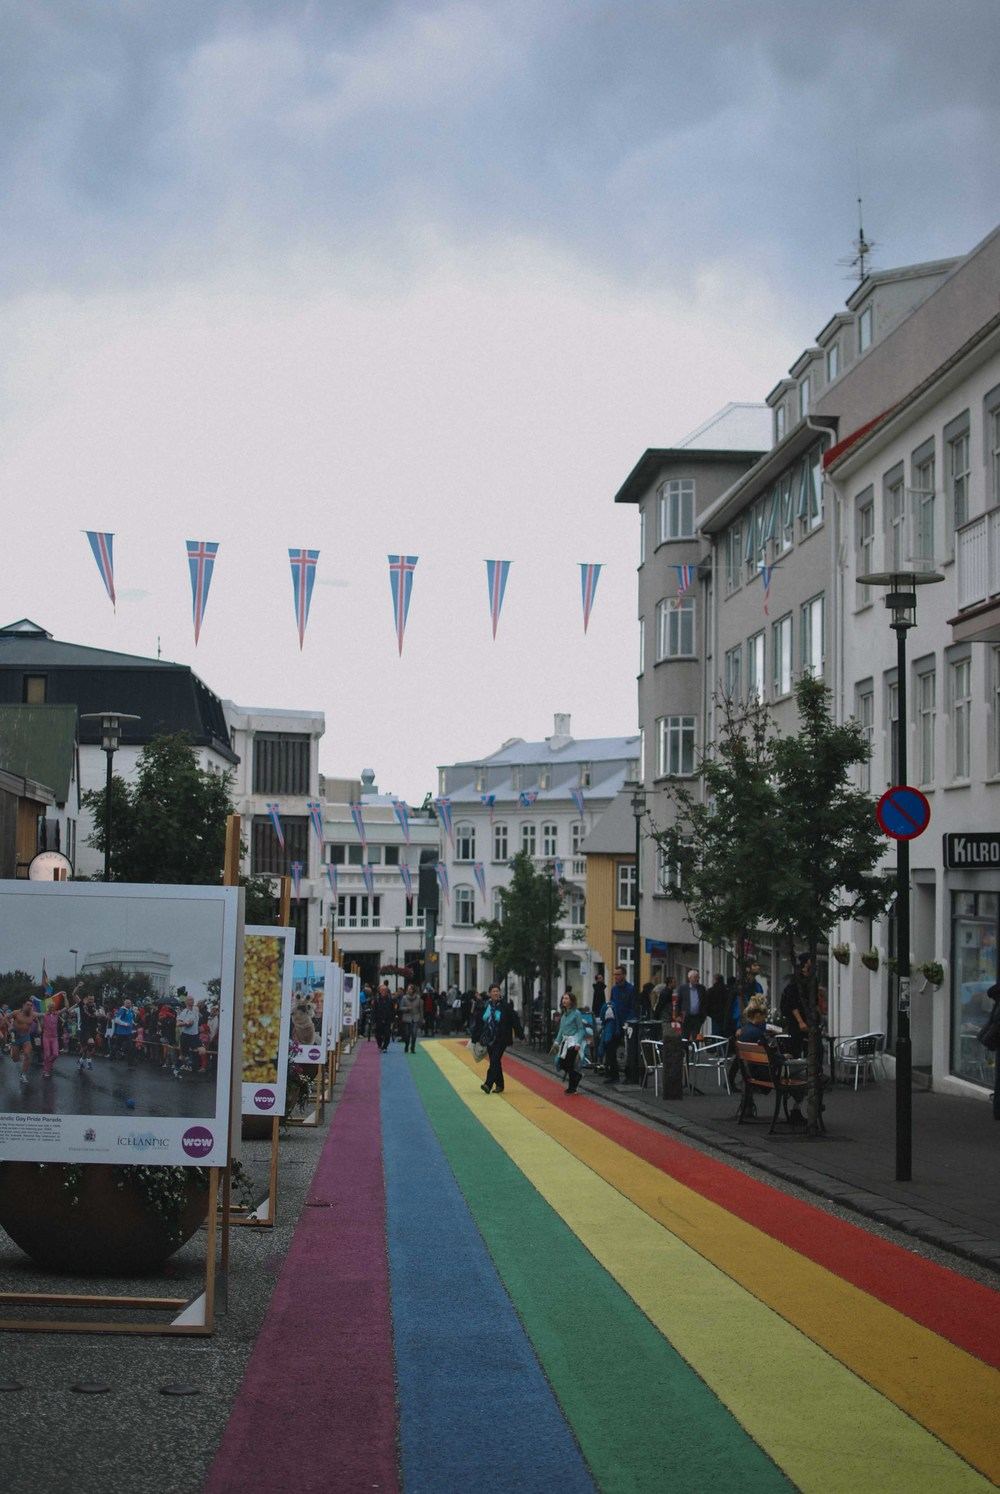 We found the Rainbow Road, which was painted for the Reykjavik Pride Festival that occurred earlier this August.